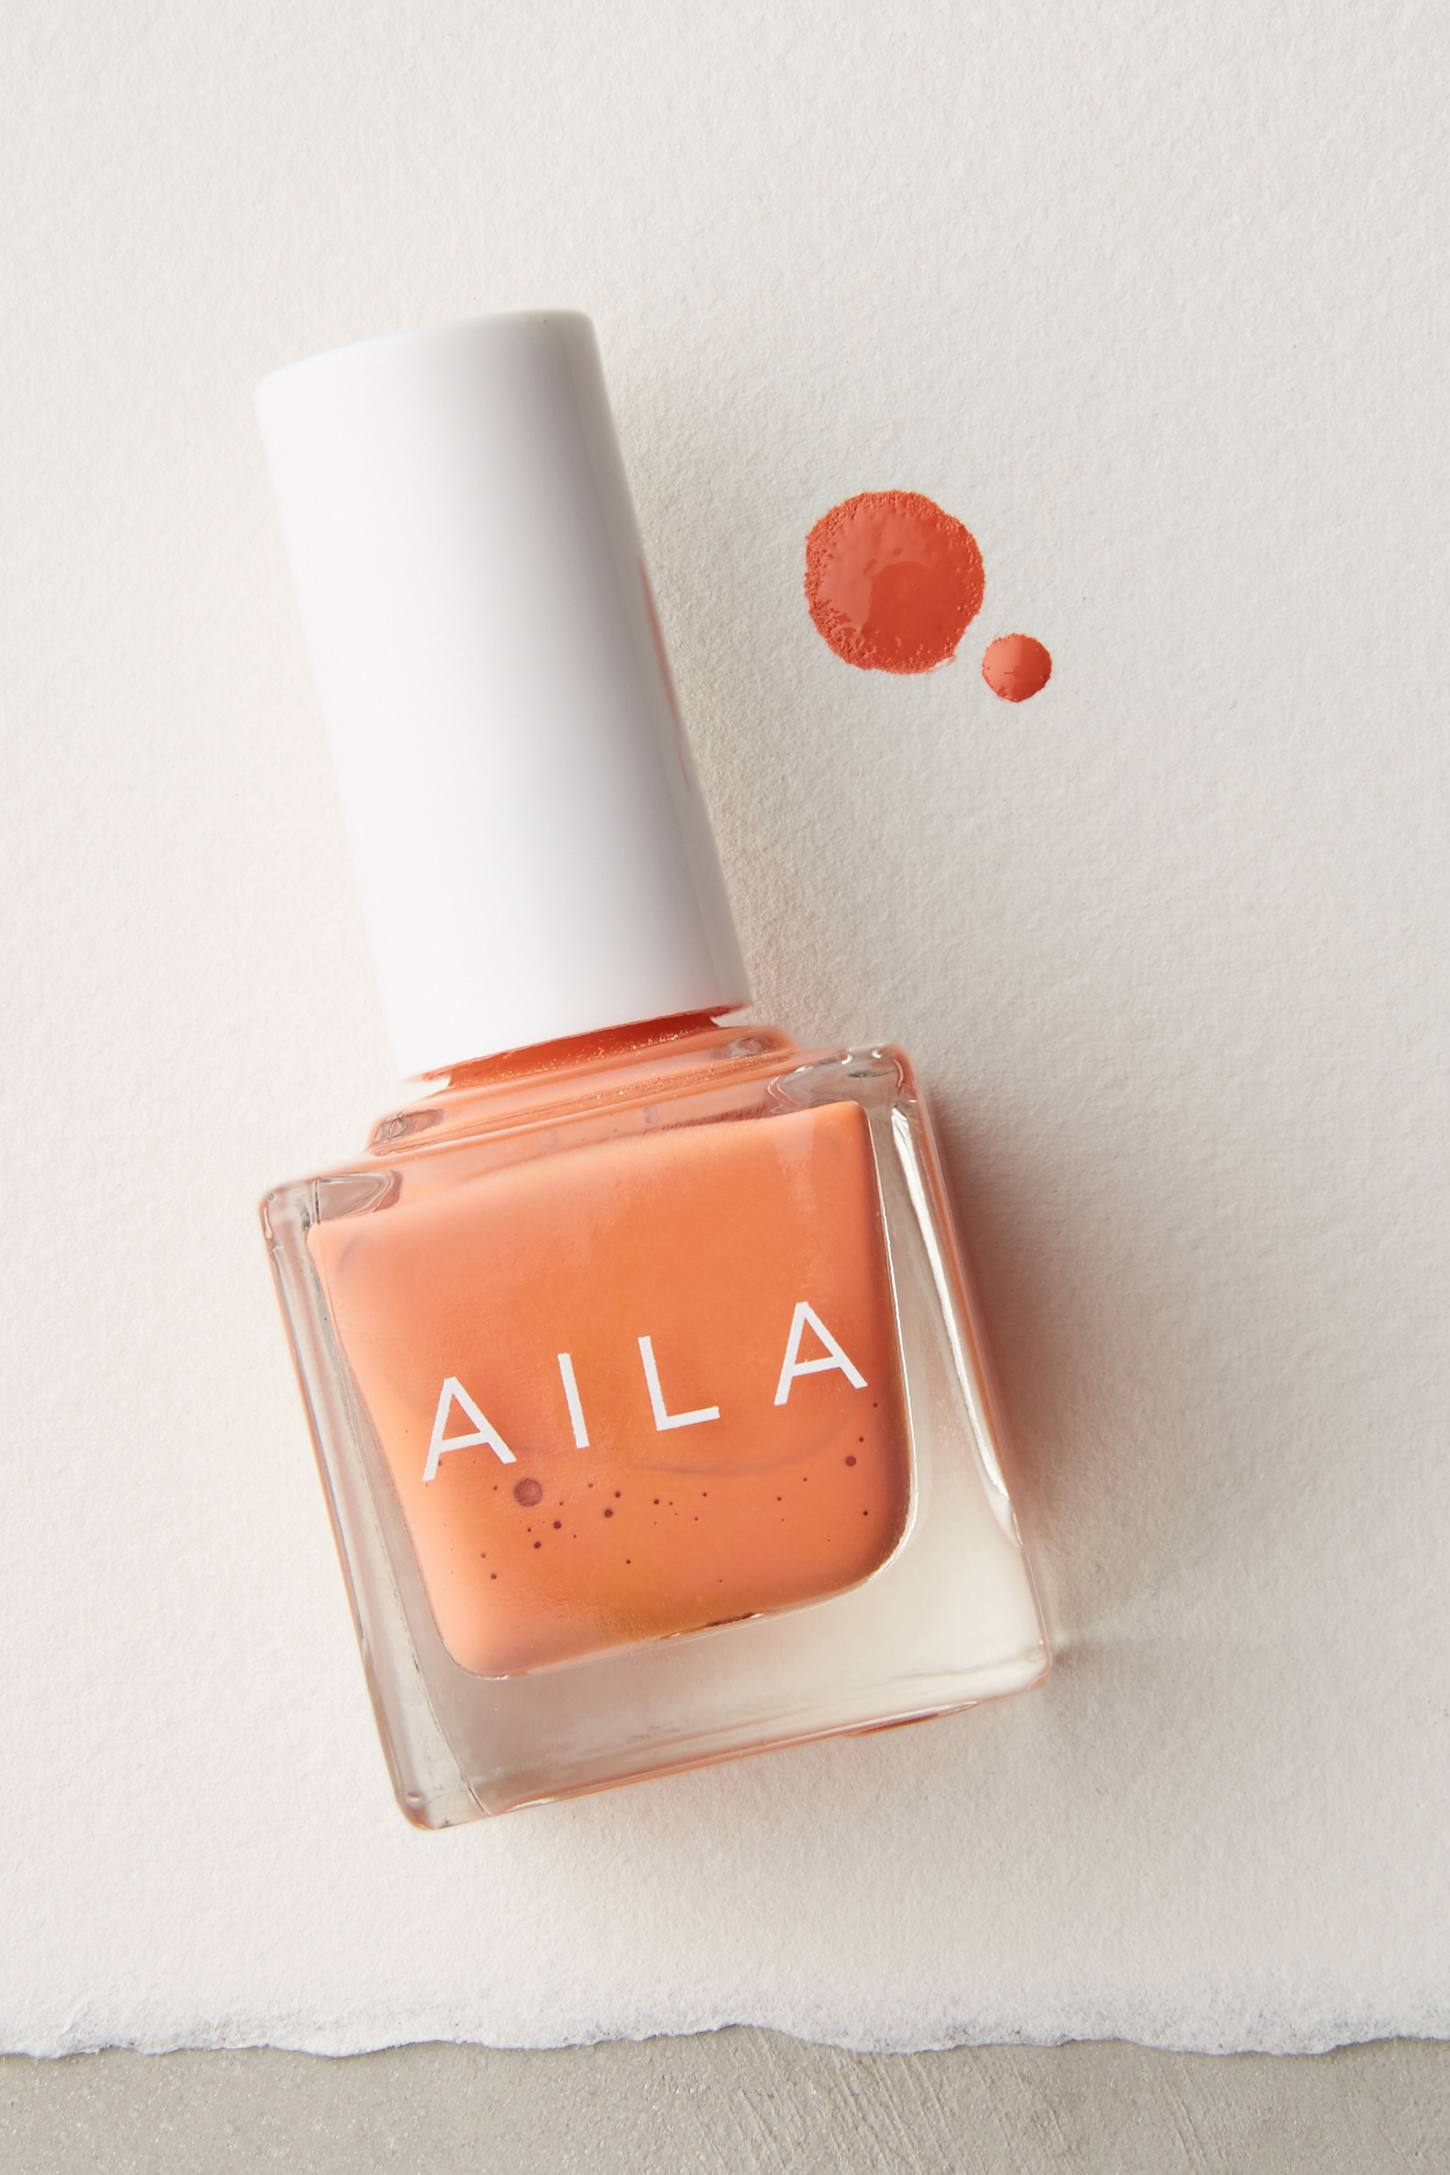 Slide View: 1: AILA Nail Color